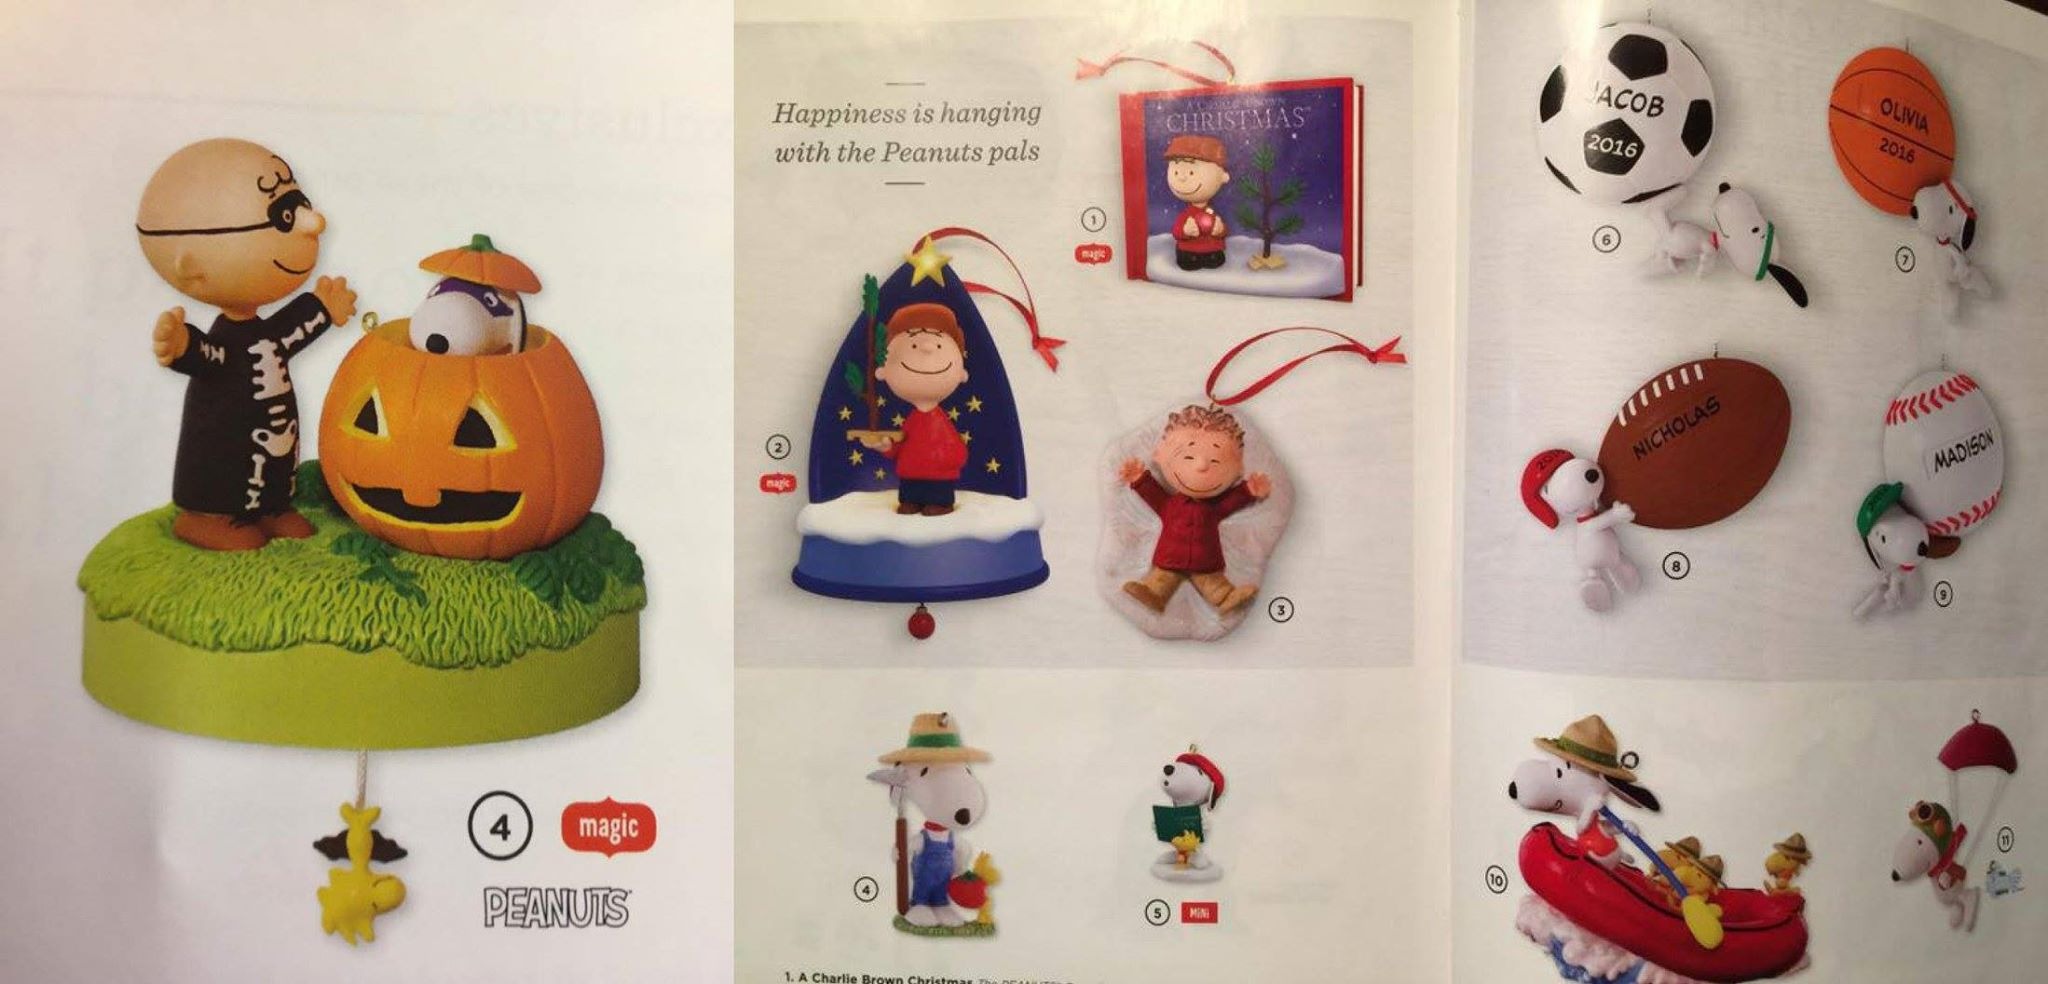 Hallmark 2016 peanuts christmas ornaments sneak peek for Hallmark christmas in july 2017 schedule